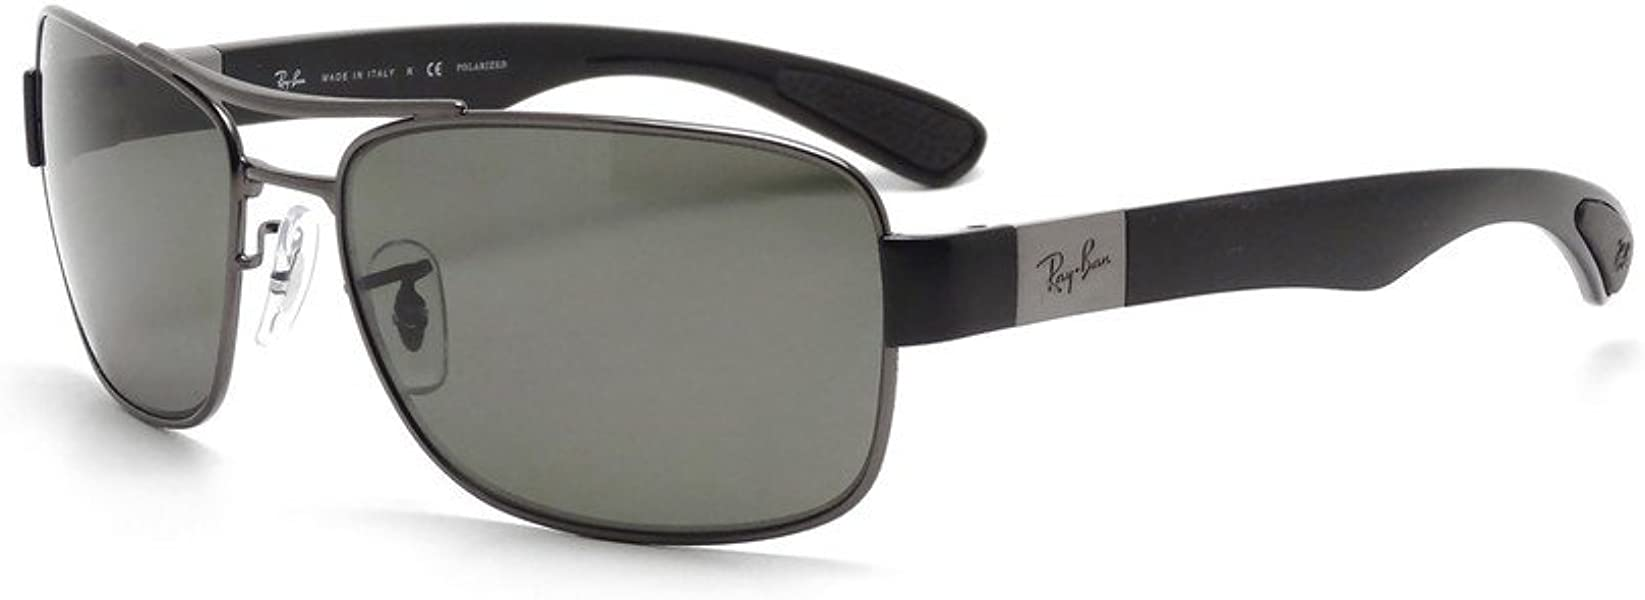 3e0c58ea54d Ray Ban RB3522 004 9A 64mm Gunmetal Polarized Green Sunglasses Bundle-2  Items. Back. Double-tap to zoom